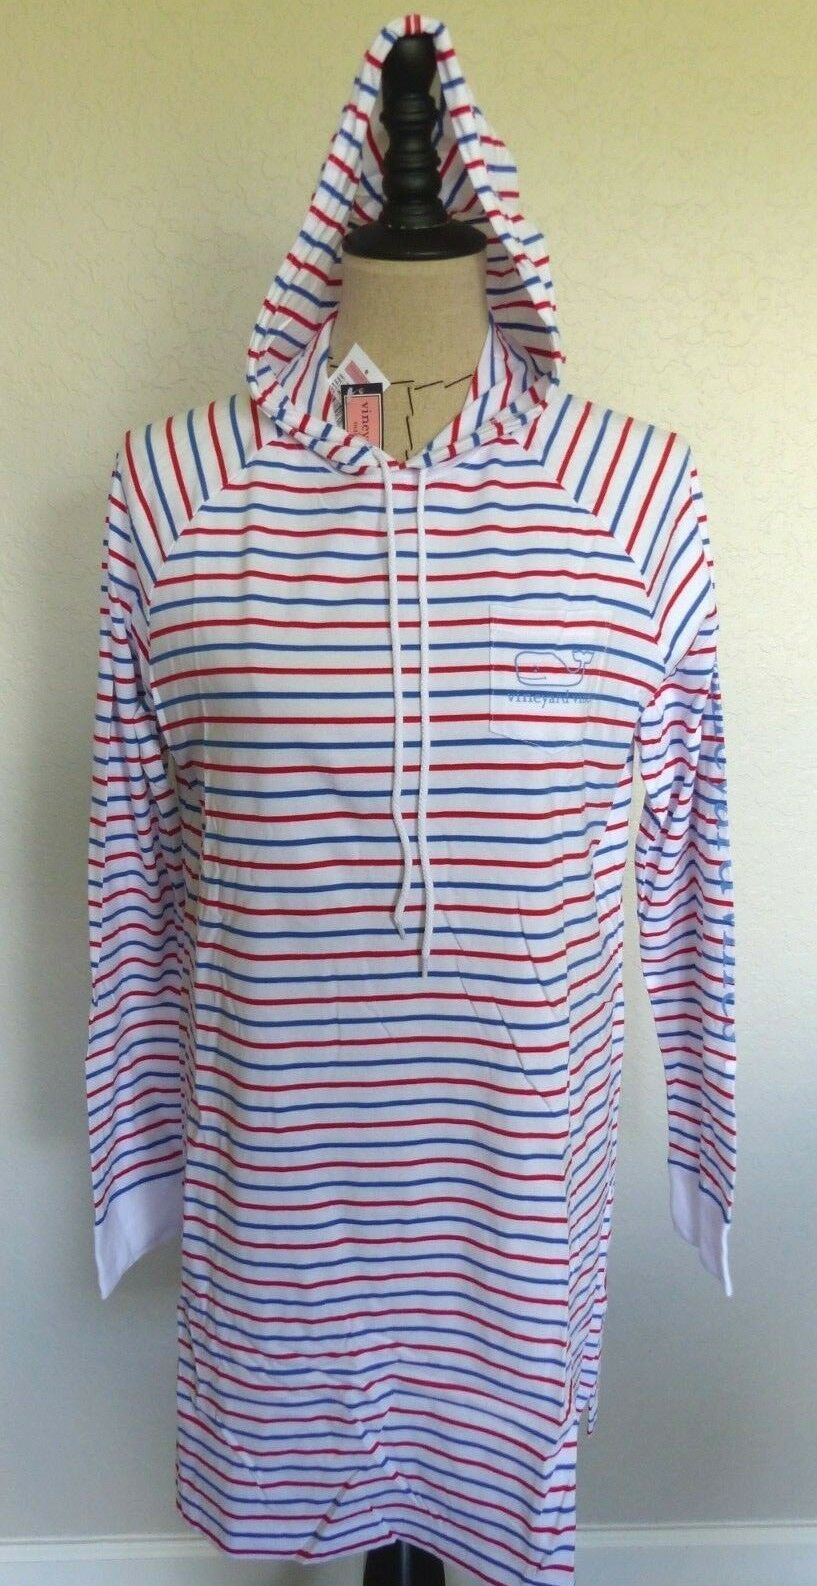 VINEYARD VINES Women's Long Sleeve Hoodie Graphic Tee Striped DRESS  Size LG NWT